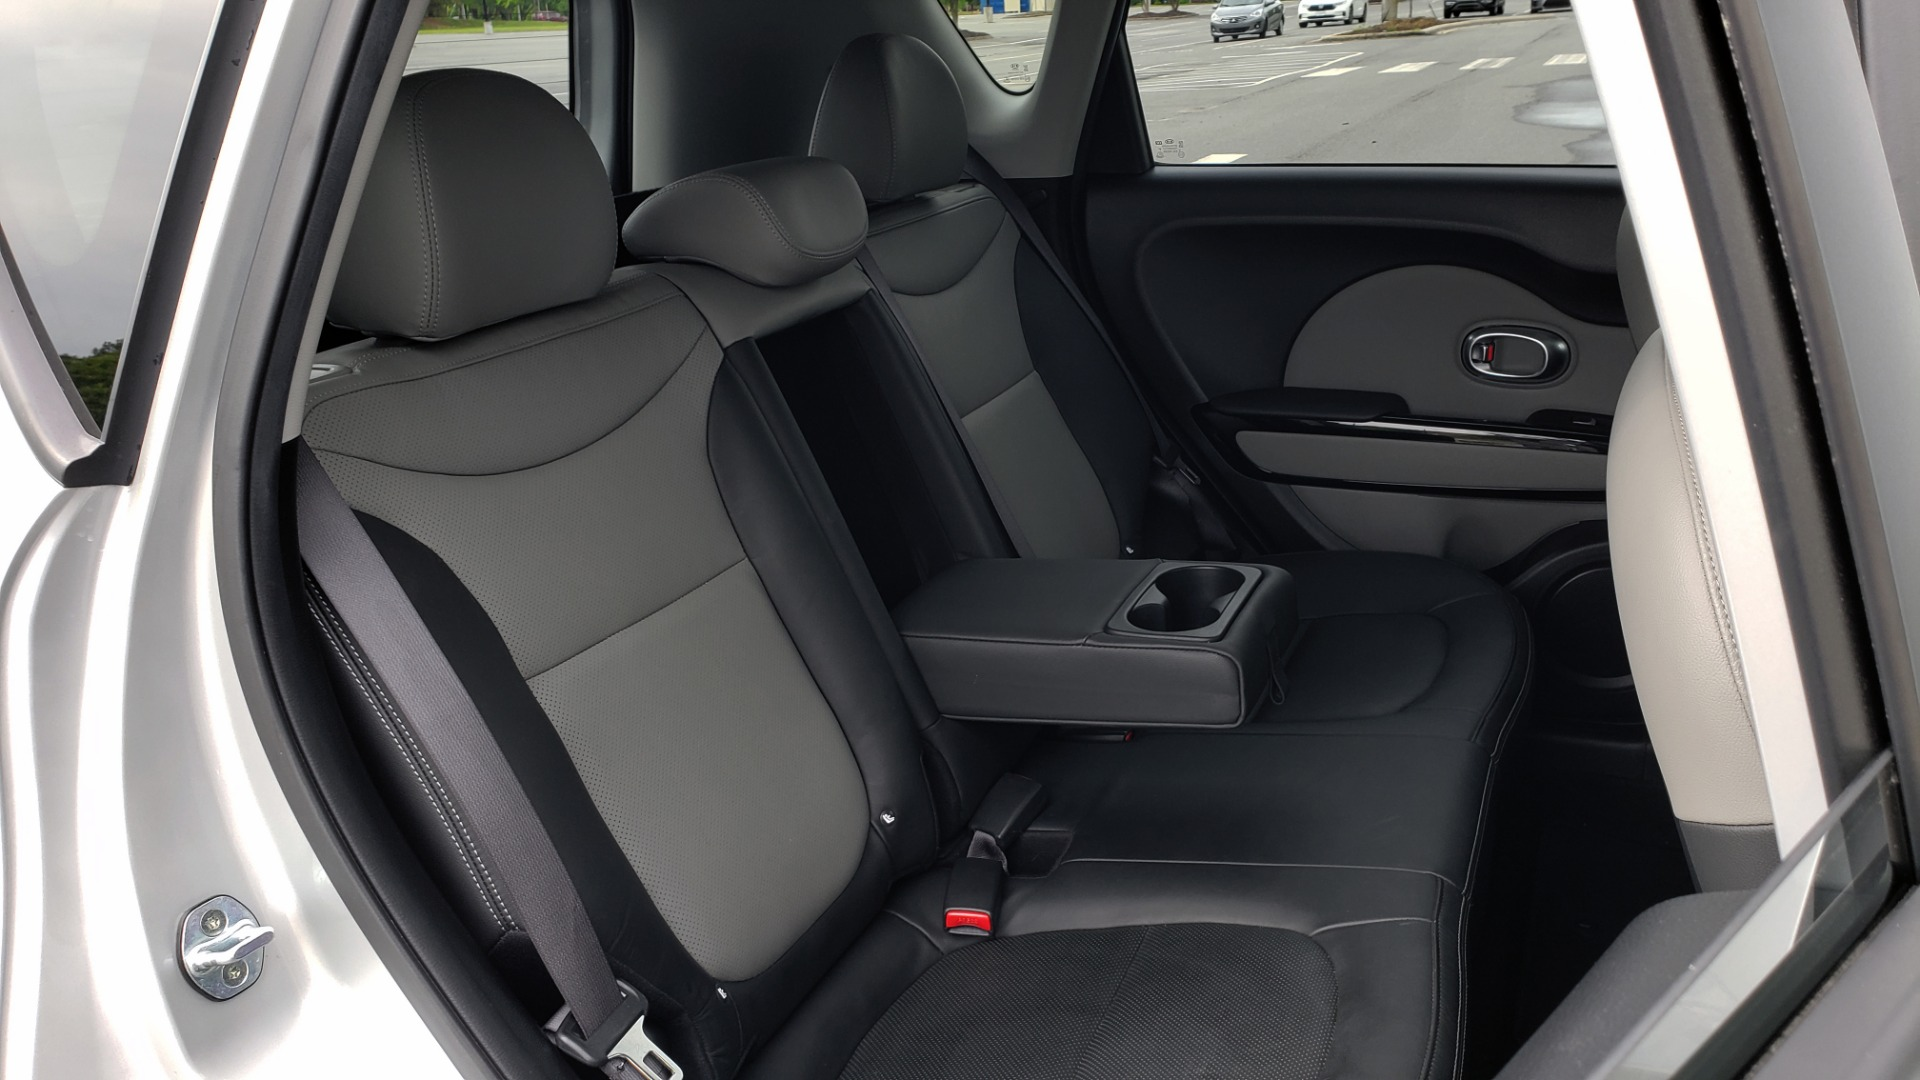 Used 2017 Kia SOUL PLUS / NAV / SUNROOF / LEATHER / HTD STS / REARVIEW for sale $16,995 at Formula Imports in Charlotte NC 28227 67